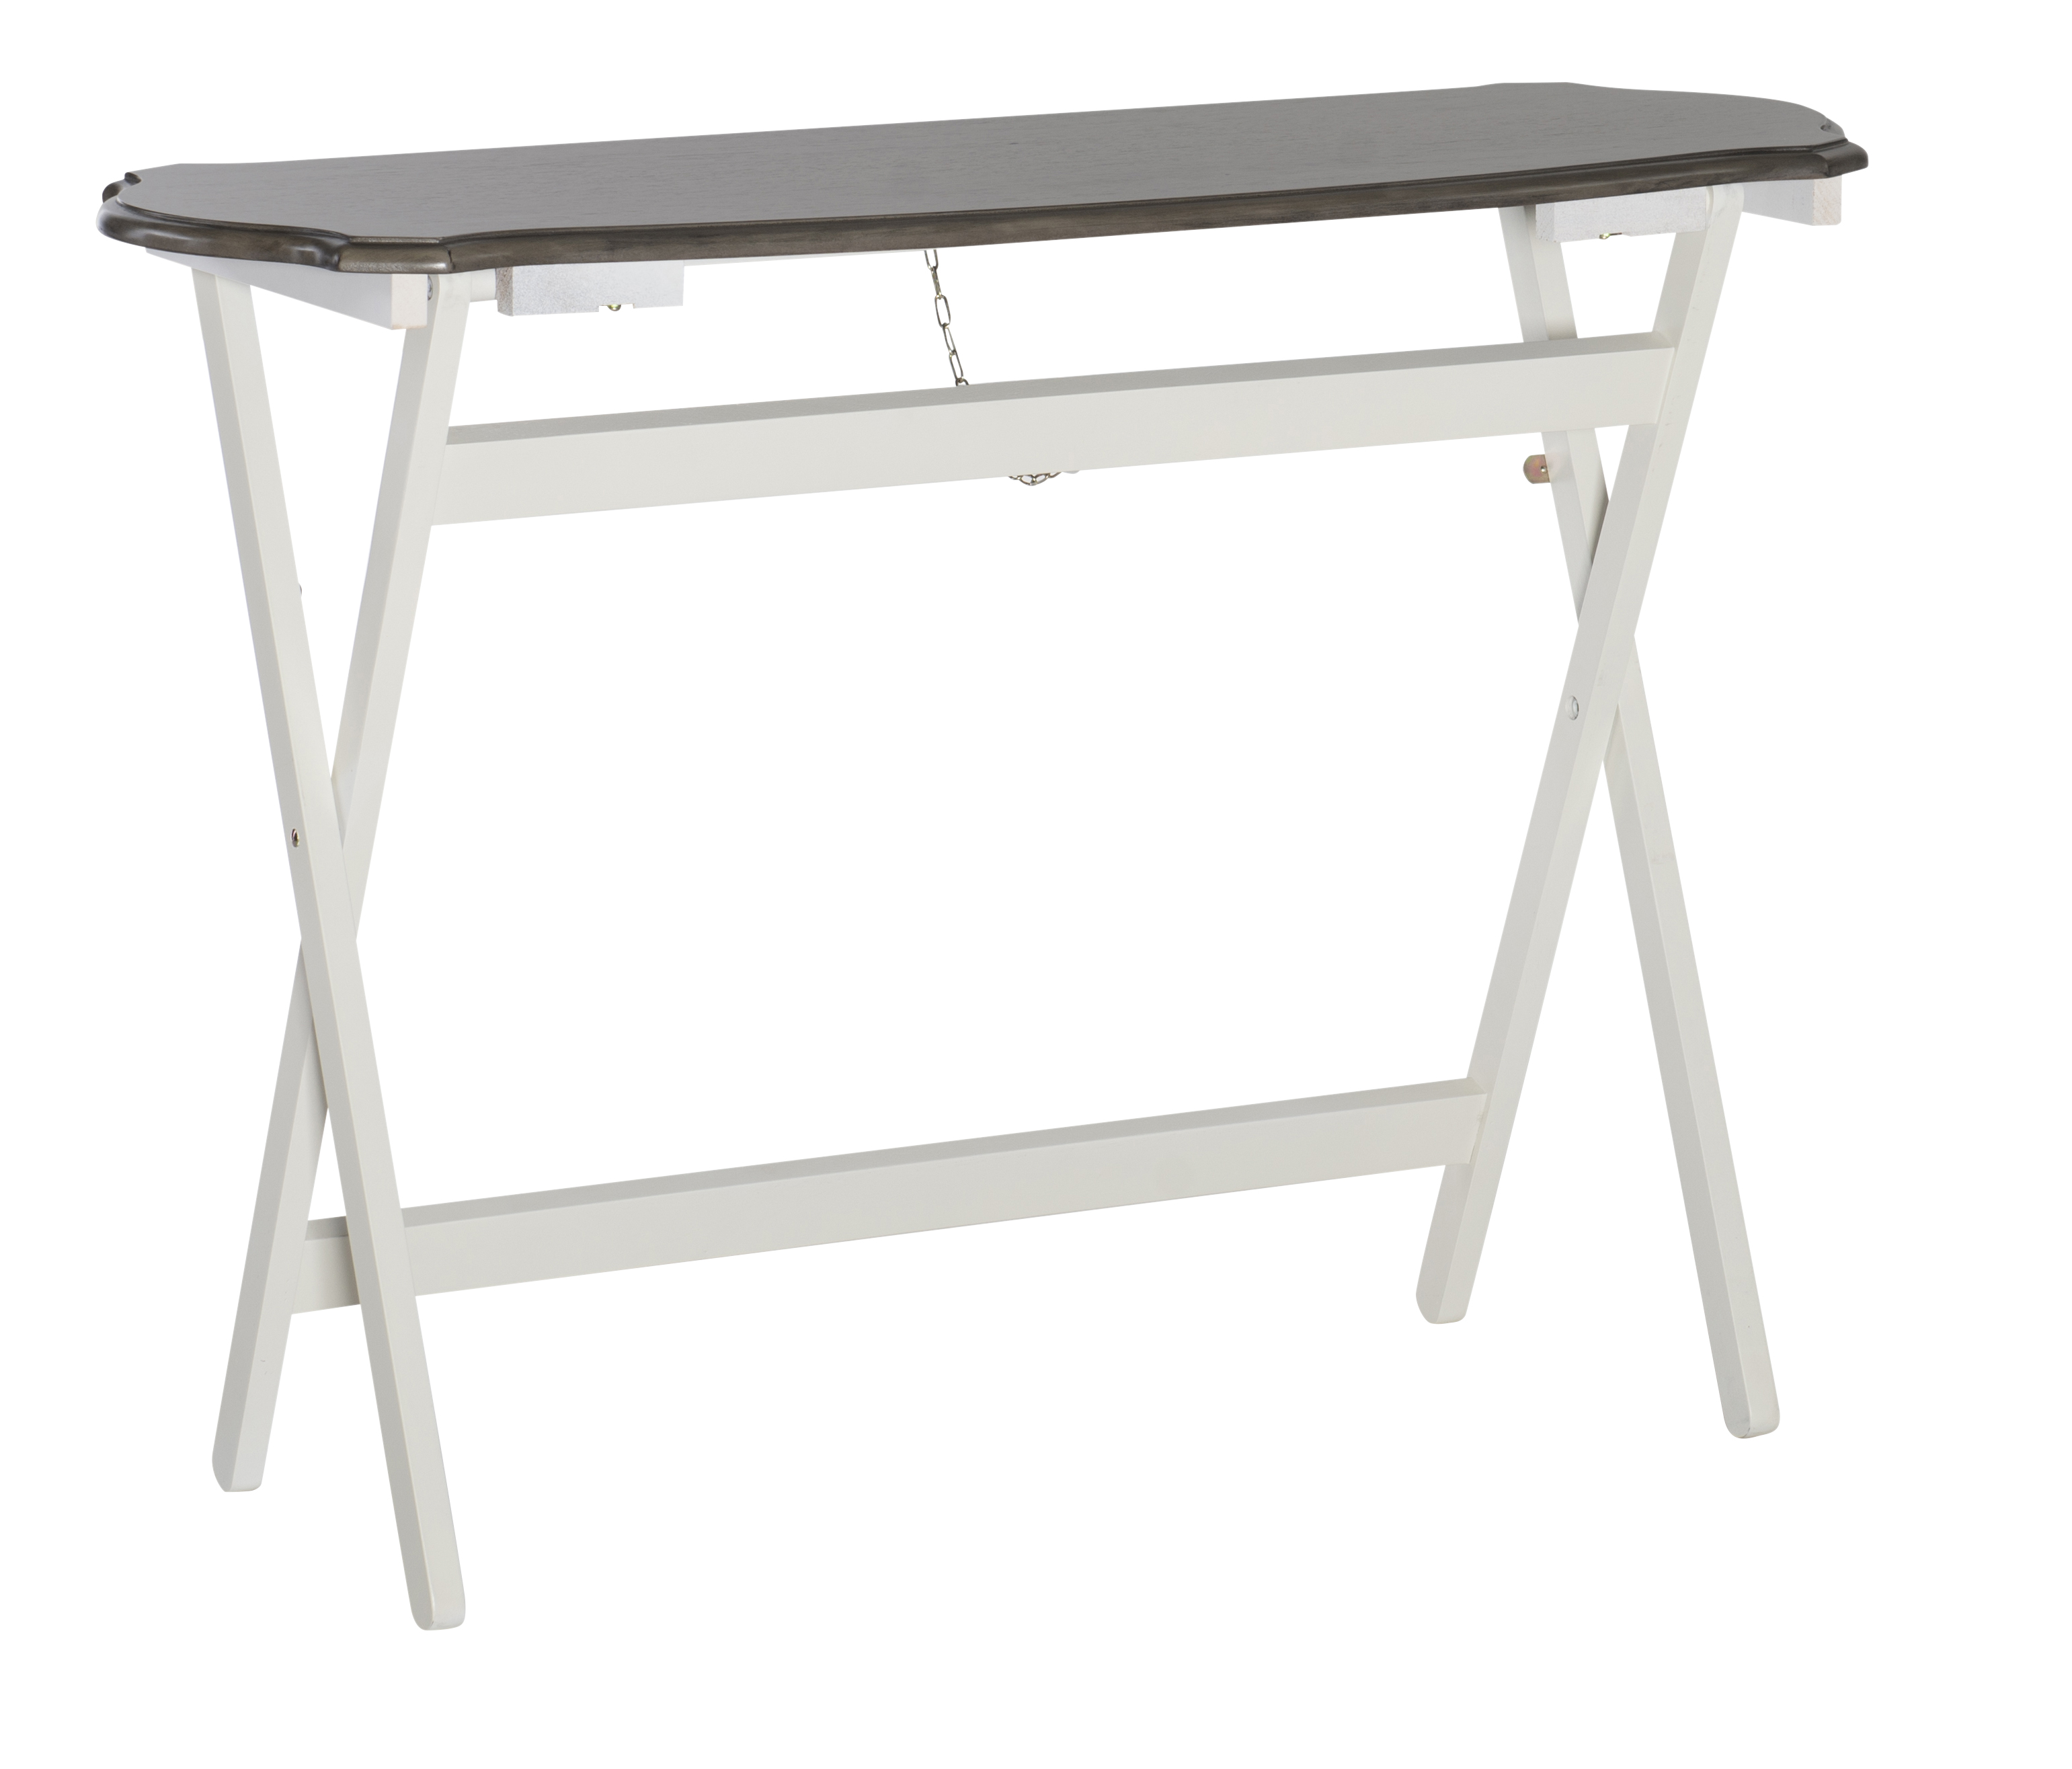 "Powell Laverne Folding Buffet Table, 29-15/16""H x 42-1/8""W x 15-3/4""D, White/Gray/Brown"